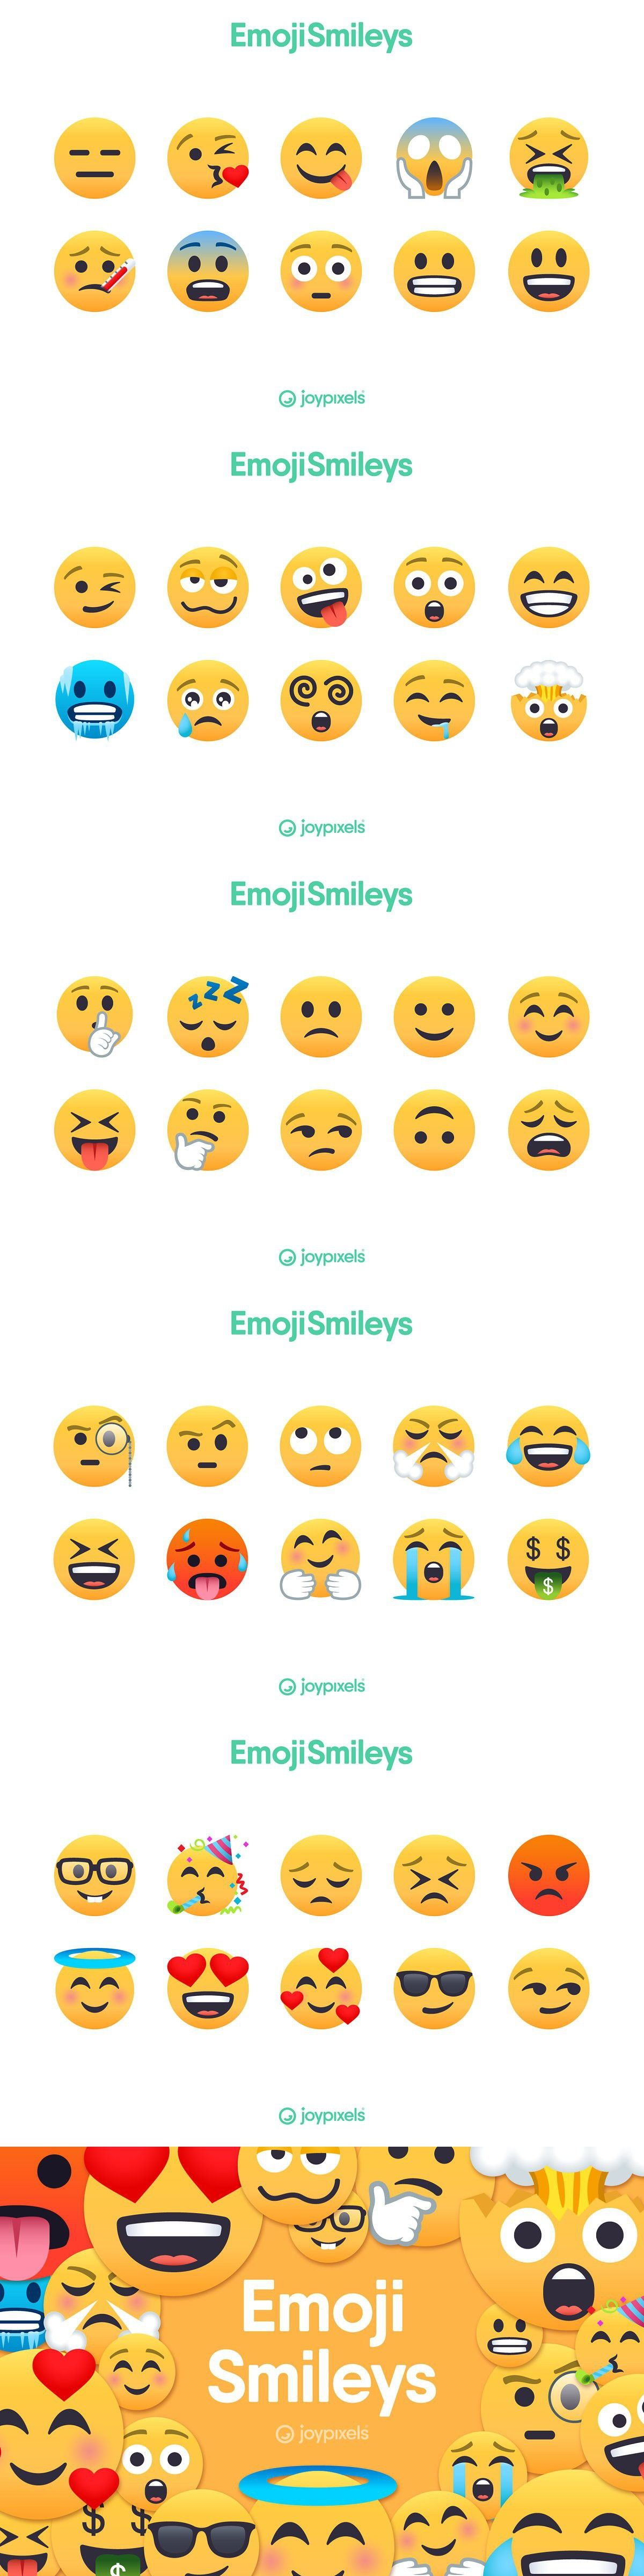 Raised Eyebrow Emoji : raised, eyebrow, emoji, Emoji, Smiley, Icons, JoyPixels®, Face,, Winking